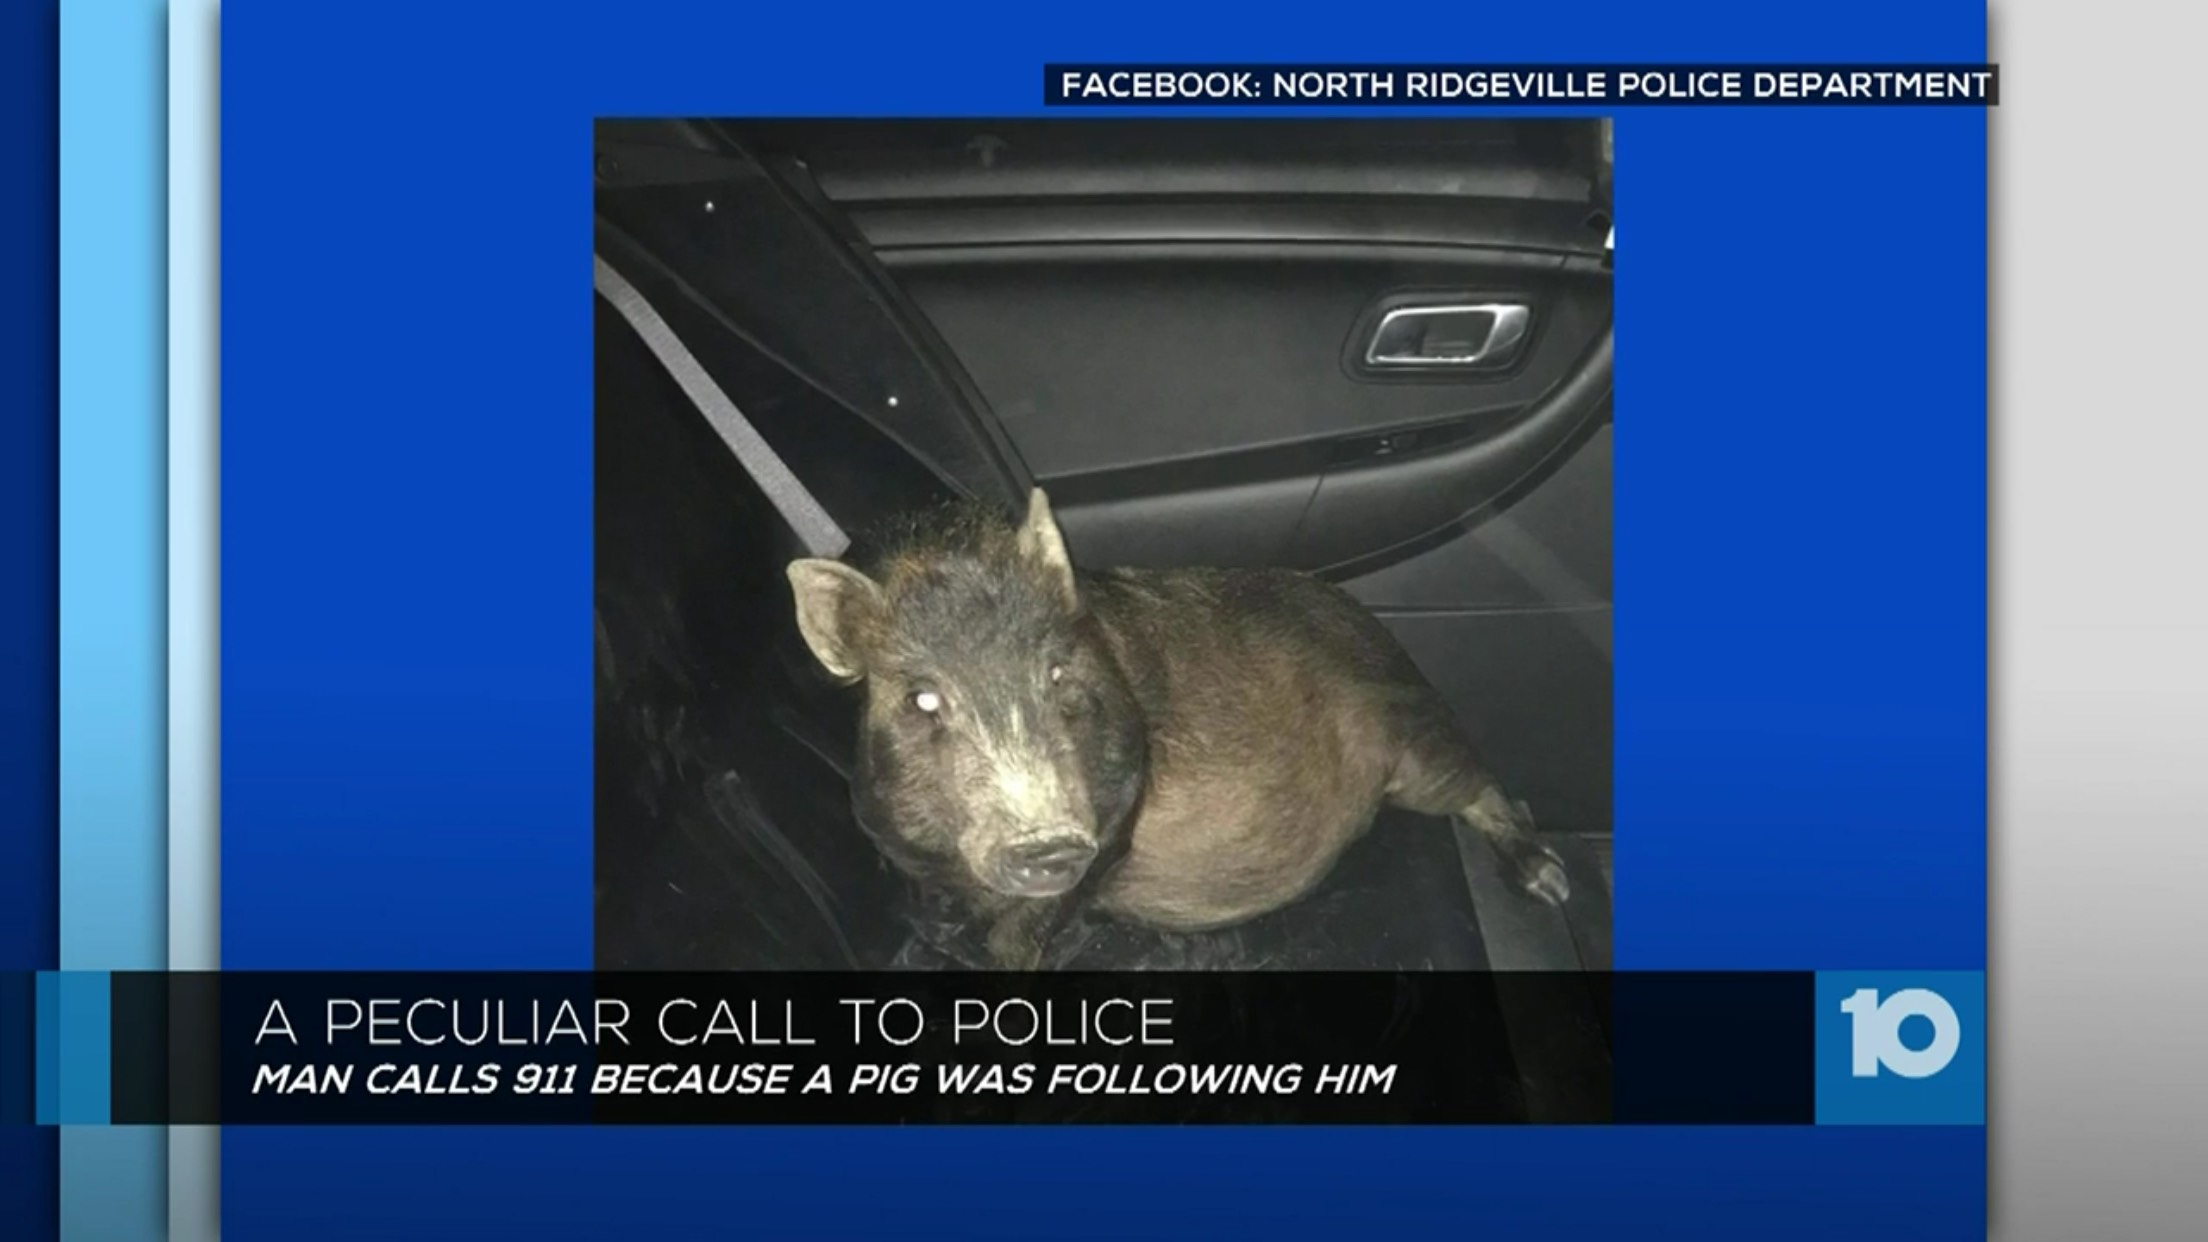 A Peculiar Call To Police: Man Calls 911 Because A Pig Was Following Him